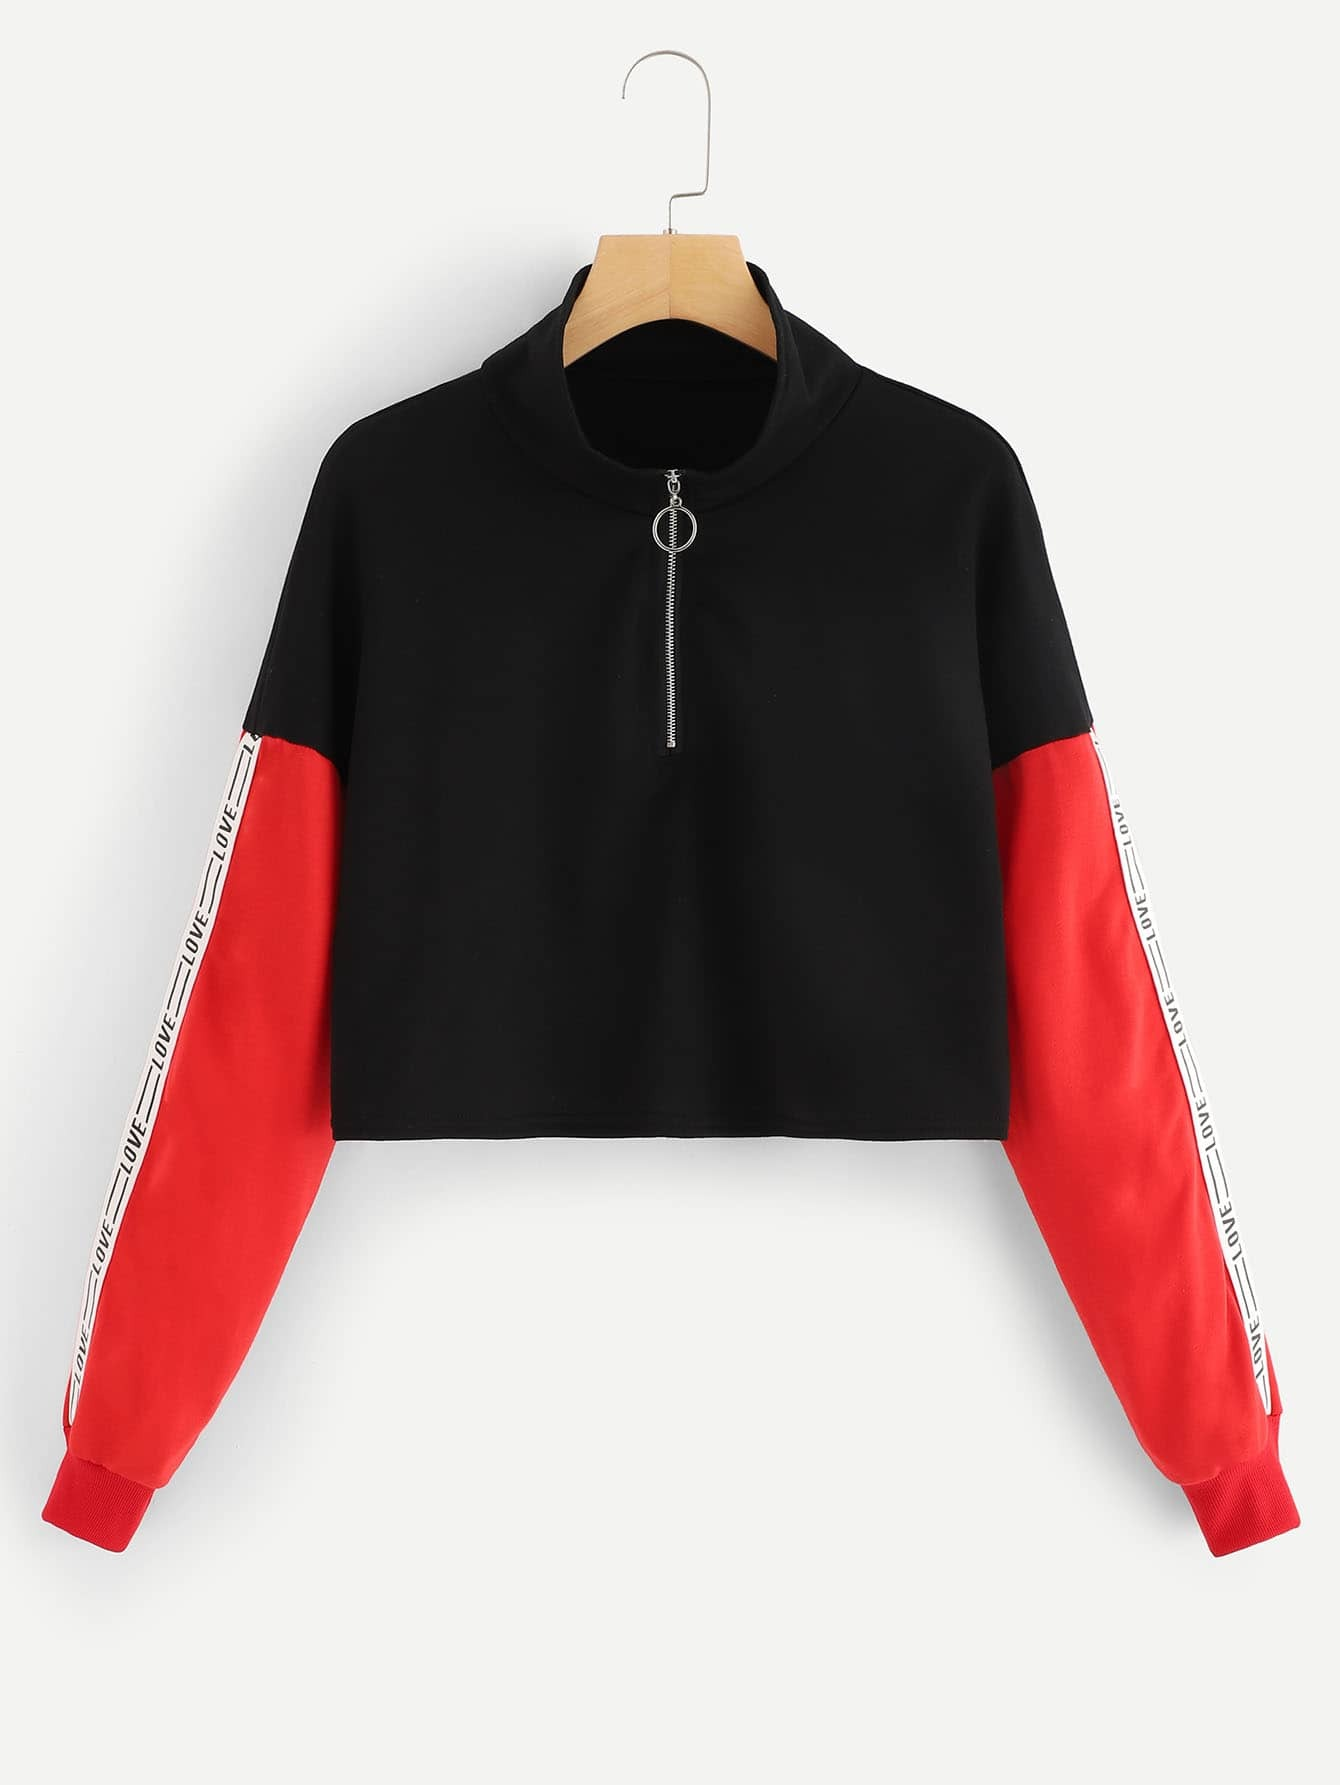 Quarter Zip Colorblock Letter Print Sweatshirt Quarter Zip Colorblock Letter Print Sweatshirt